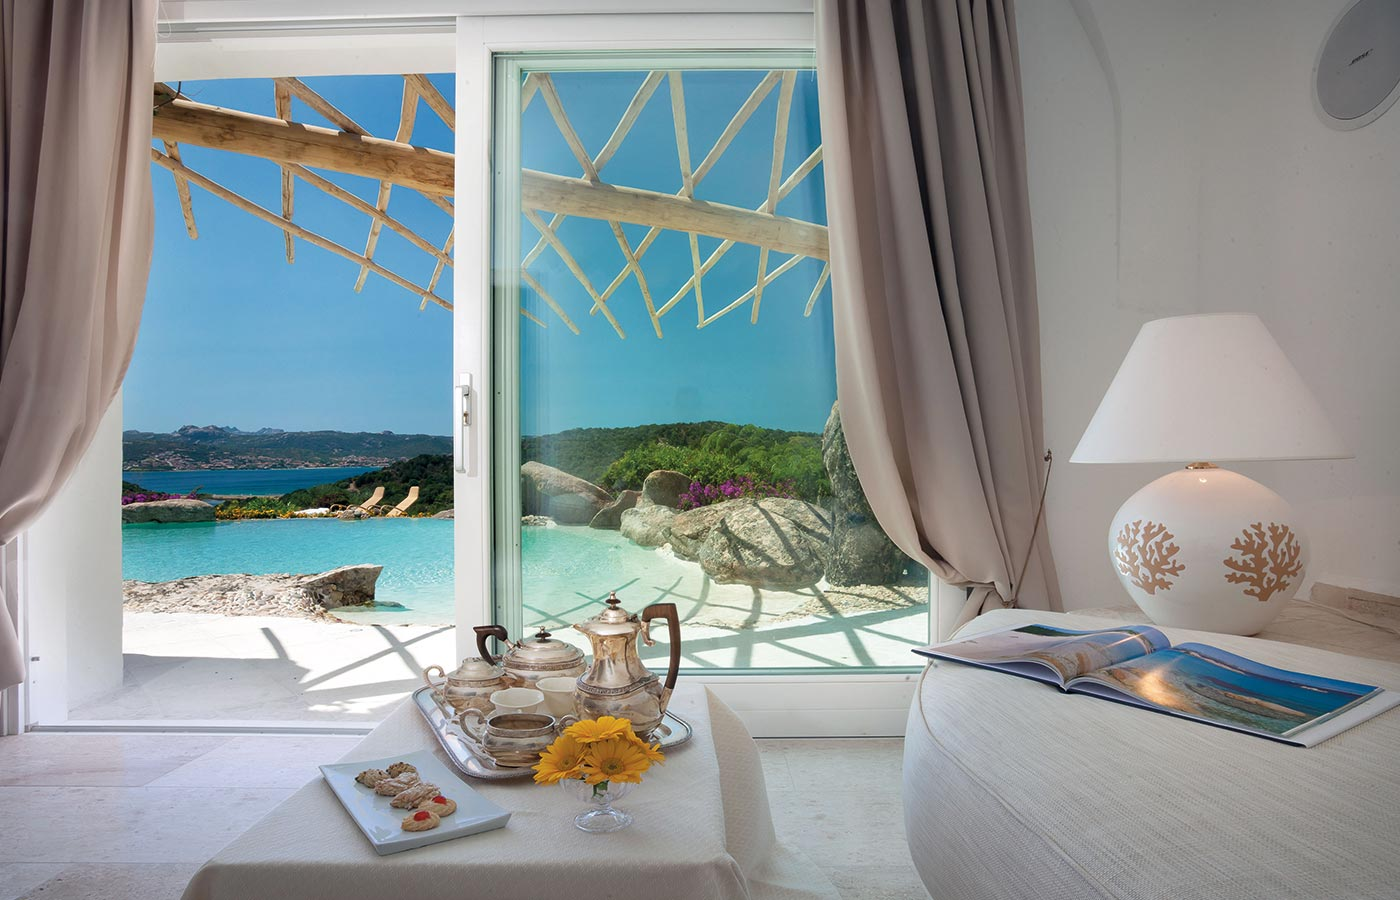 Luxury hotel in Costa Smeralda with private pool